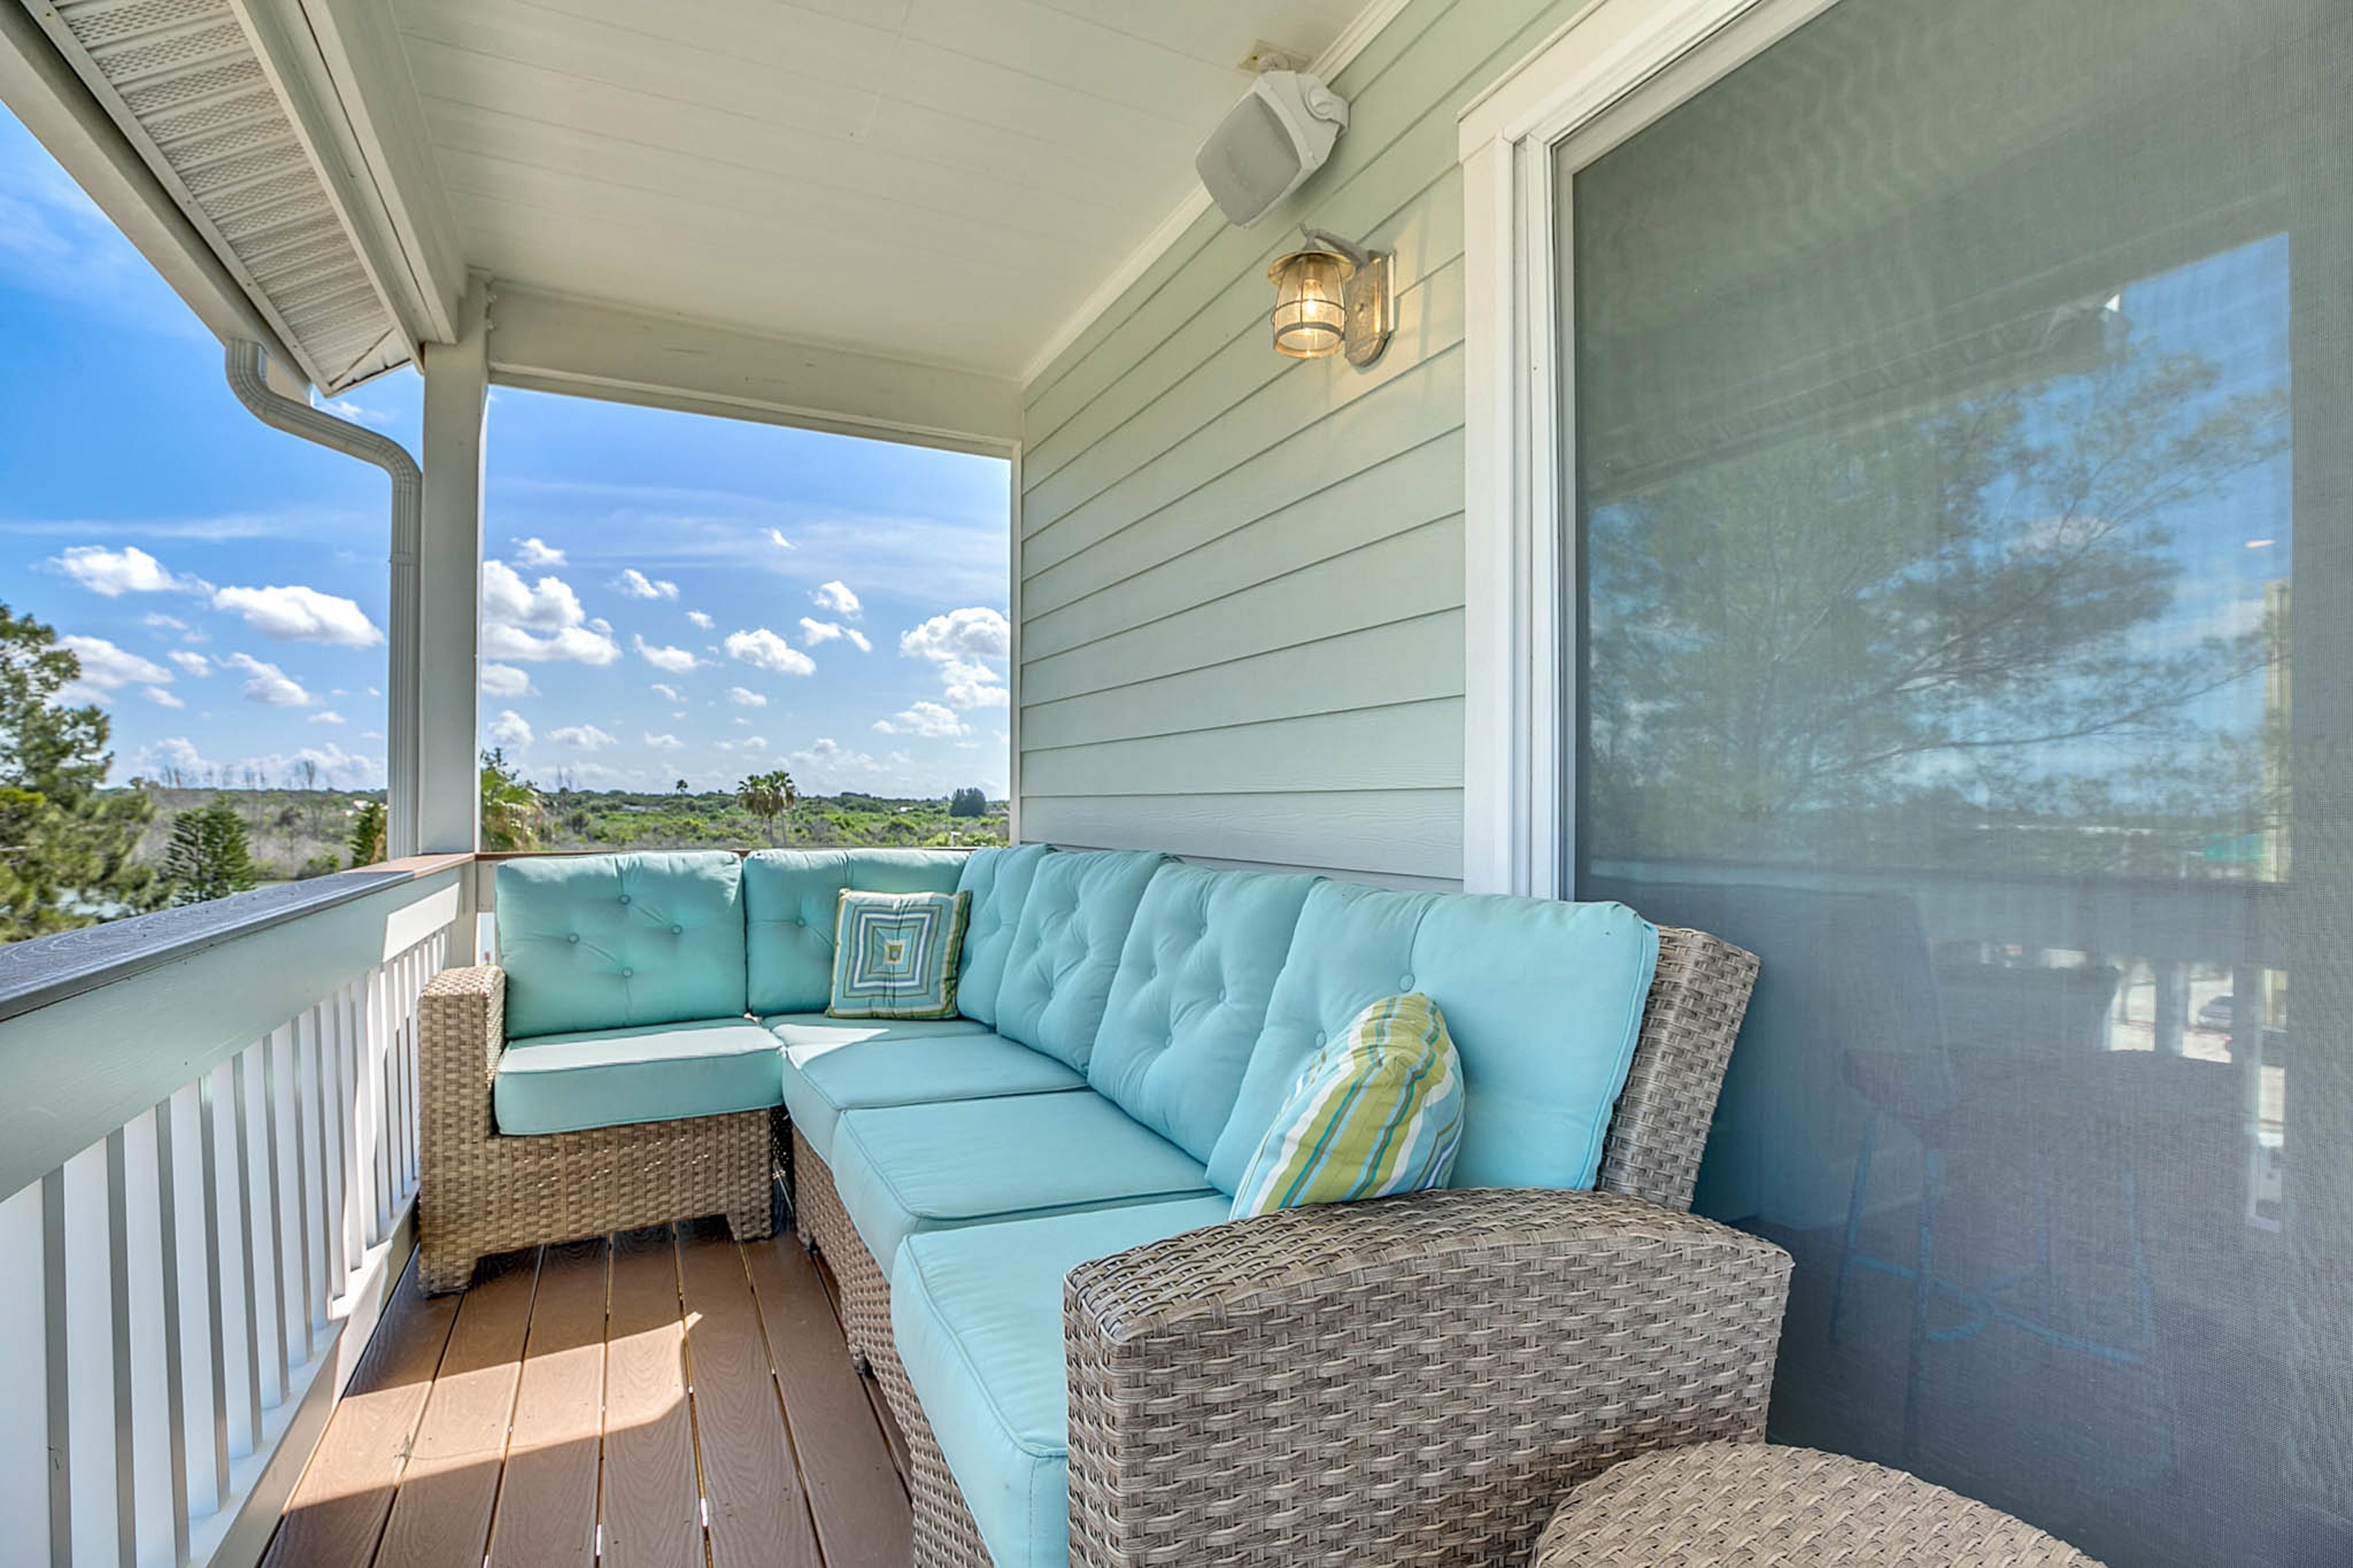 Sink into the sectional and breathe fresh air on your private balcony.